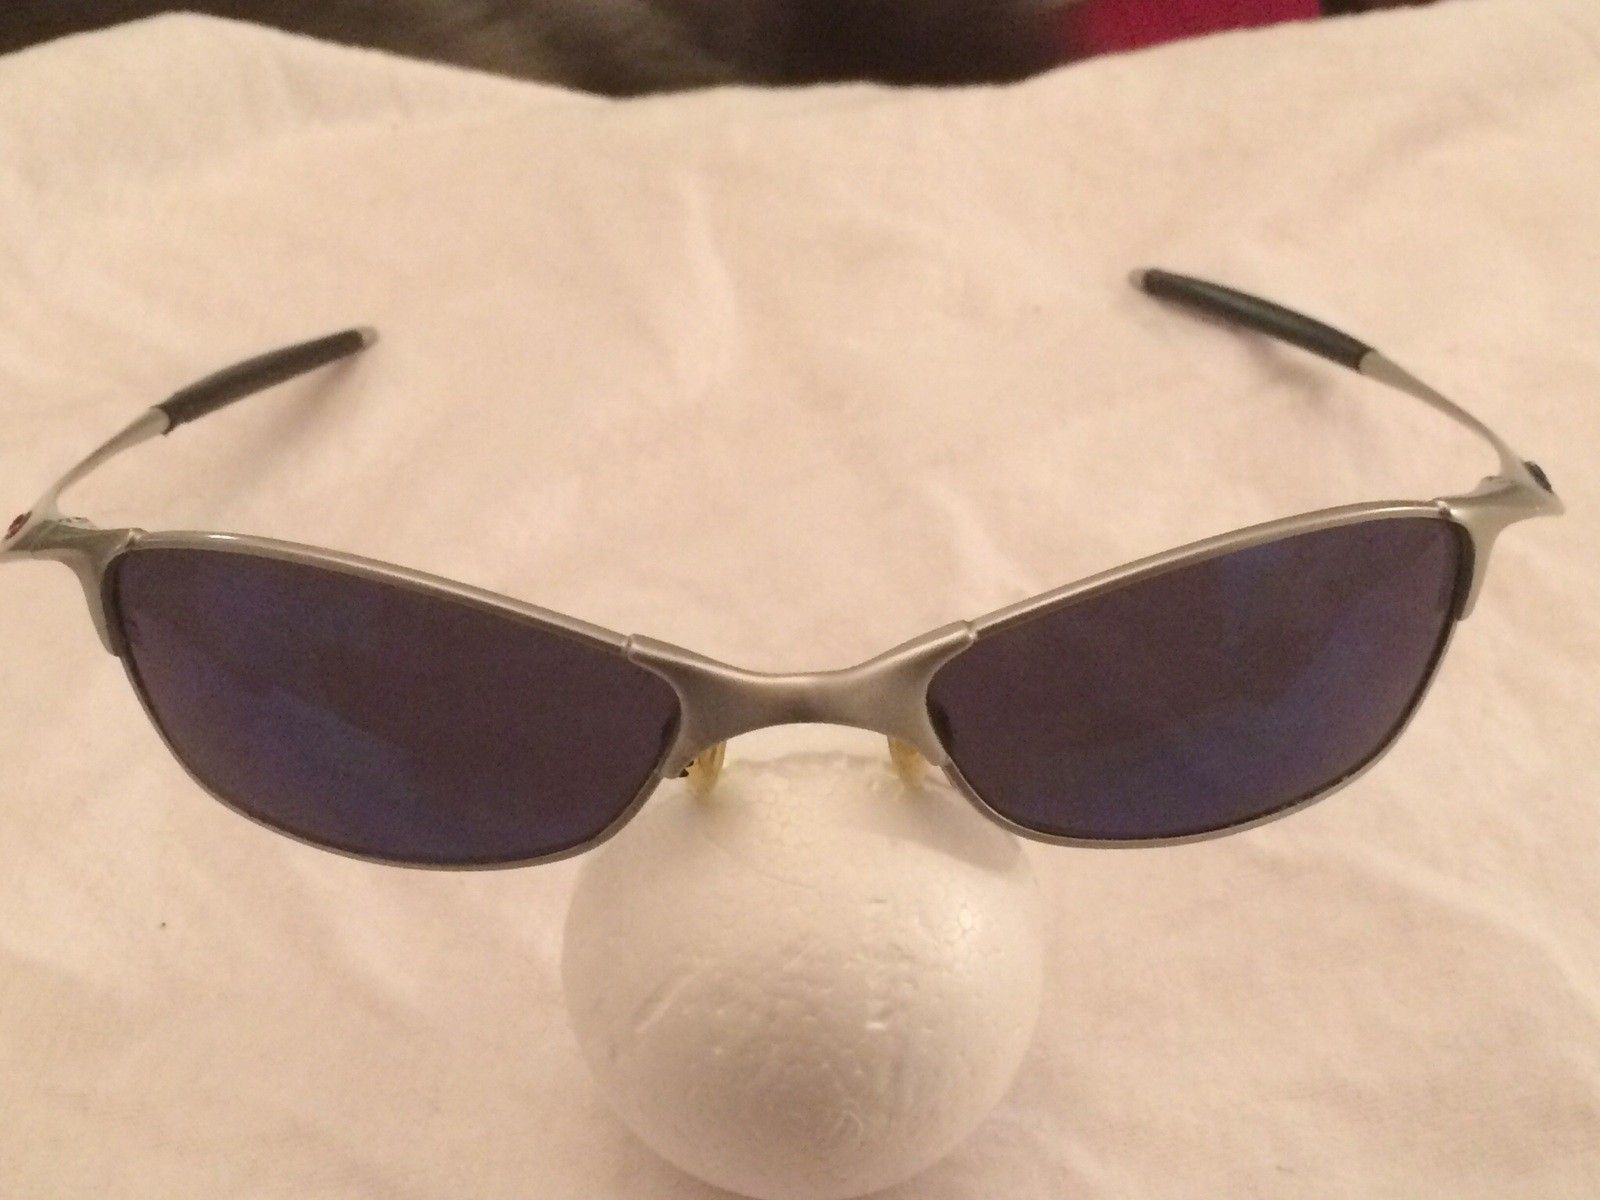 What kind of oakleys r these? - image.jpg